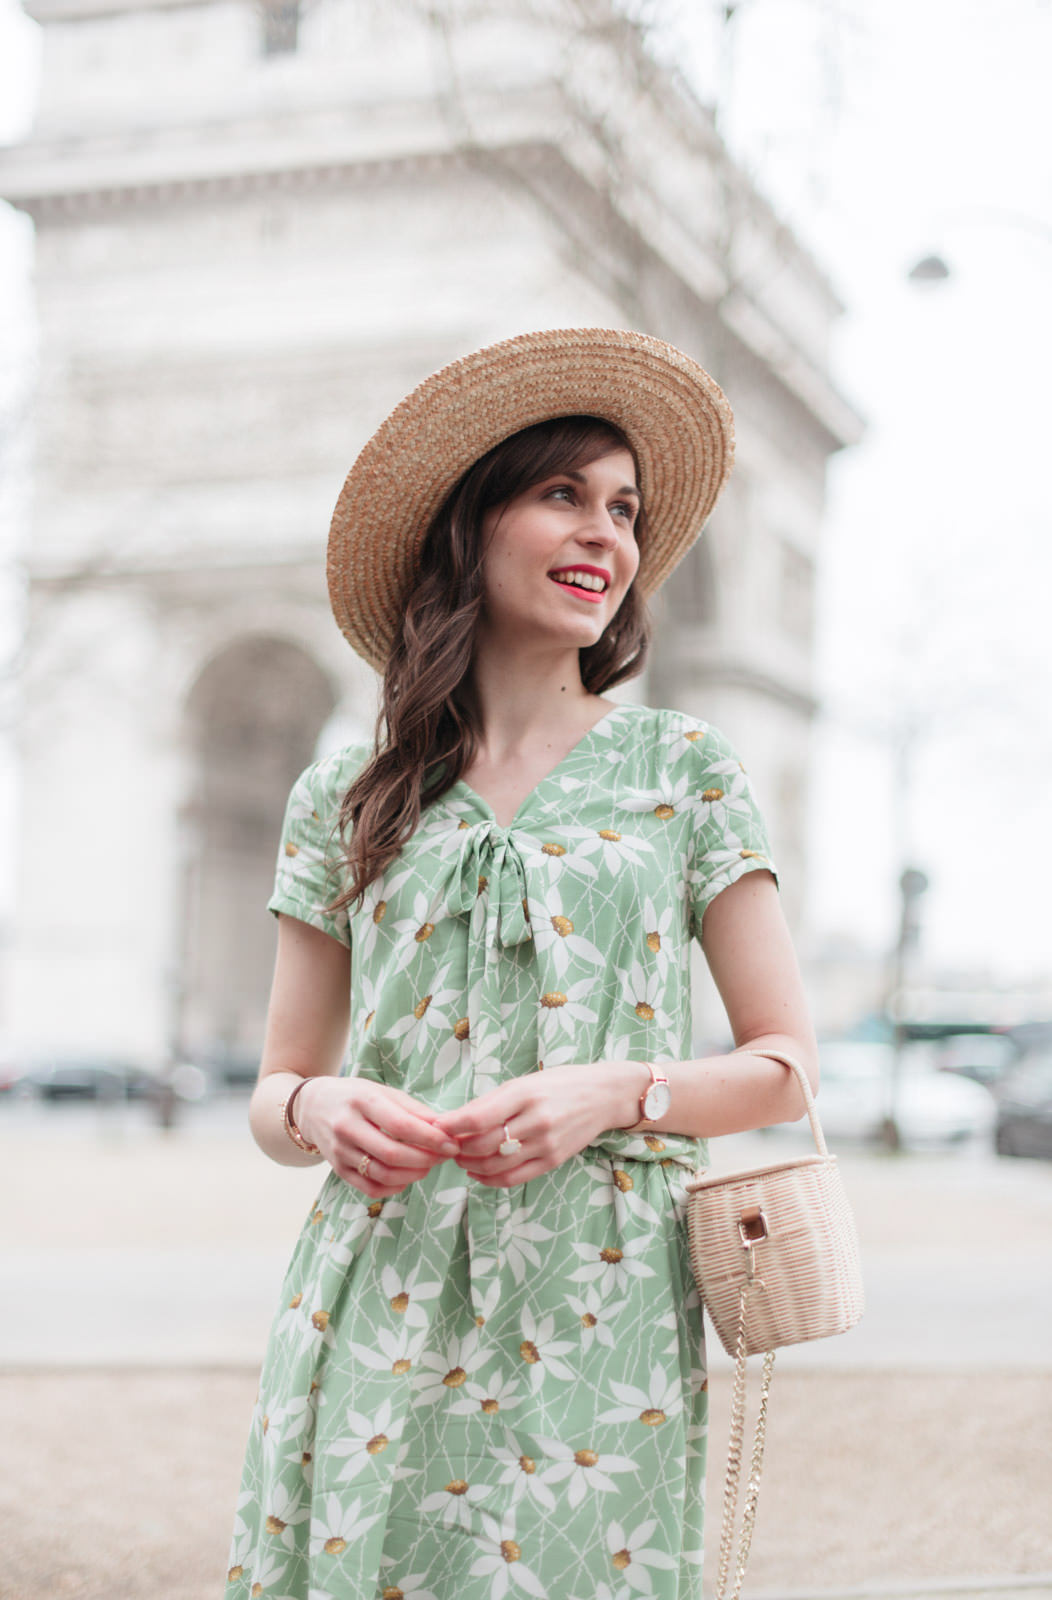 Blog-Mode-And-The-City-Looks-Robe-Fleuri-Arc-de-Triomphe-10